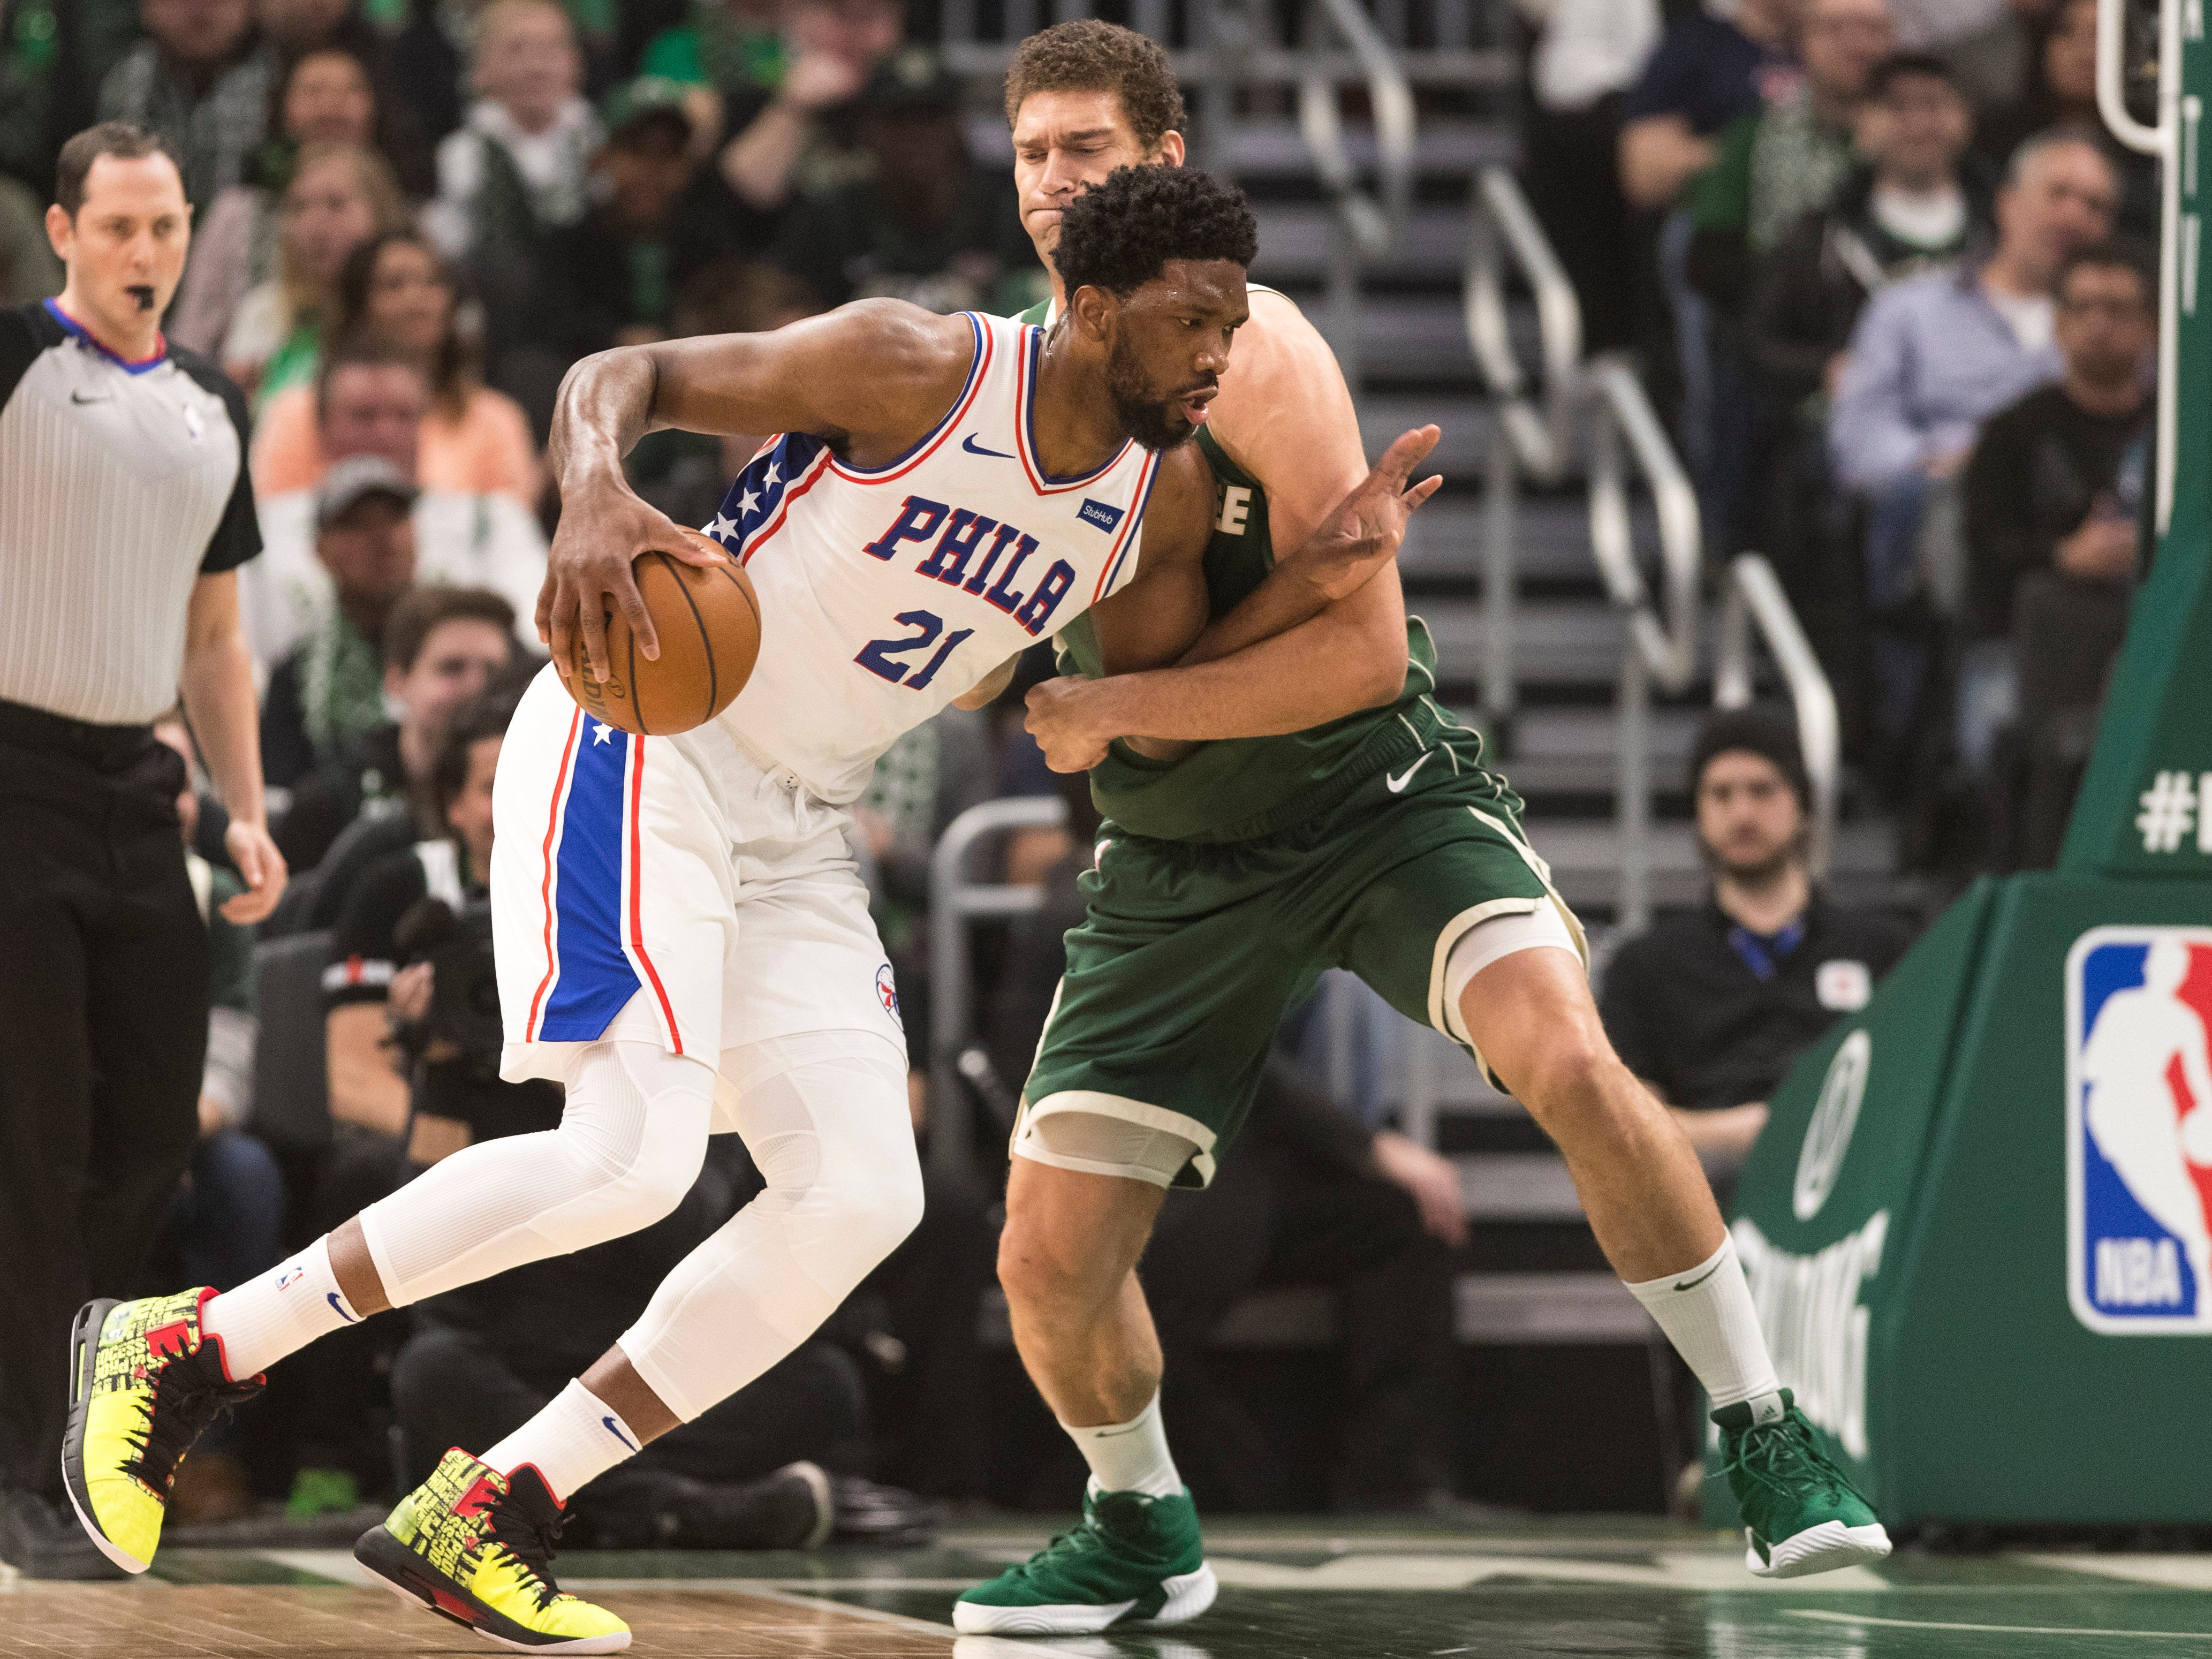 76ers center Joel Embiid works against Bucks center Brook Lopez just outside the paint during the first quarter.